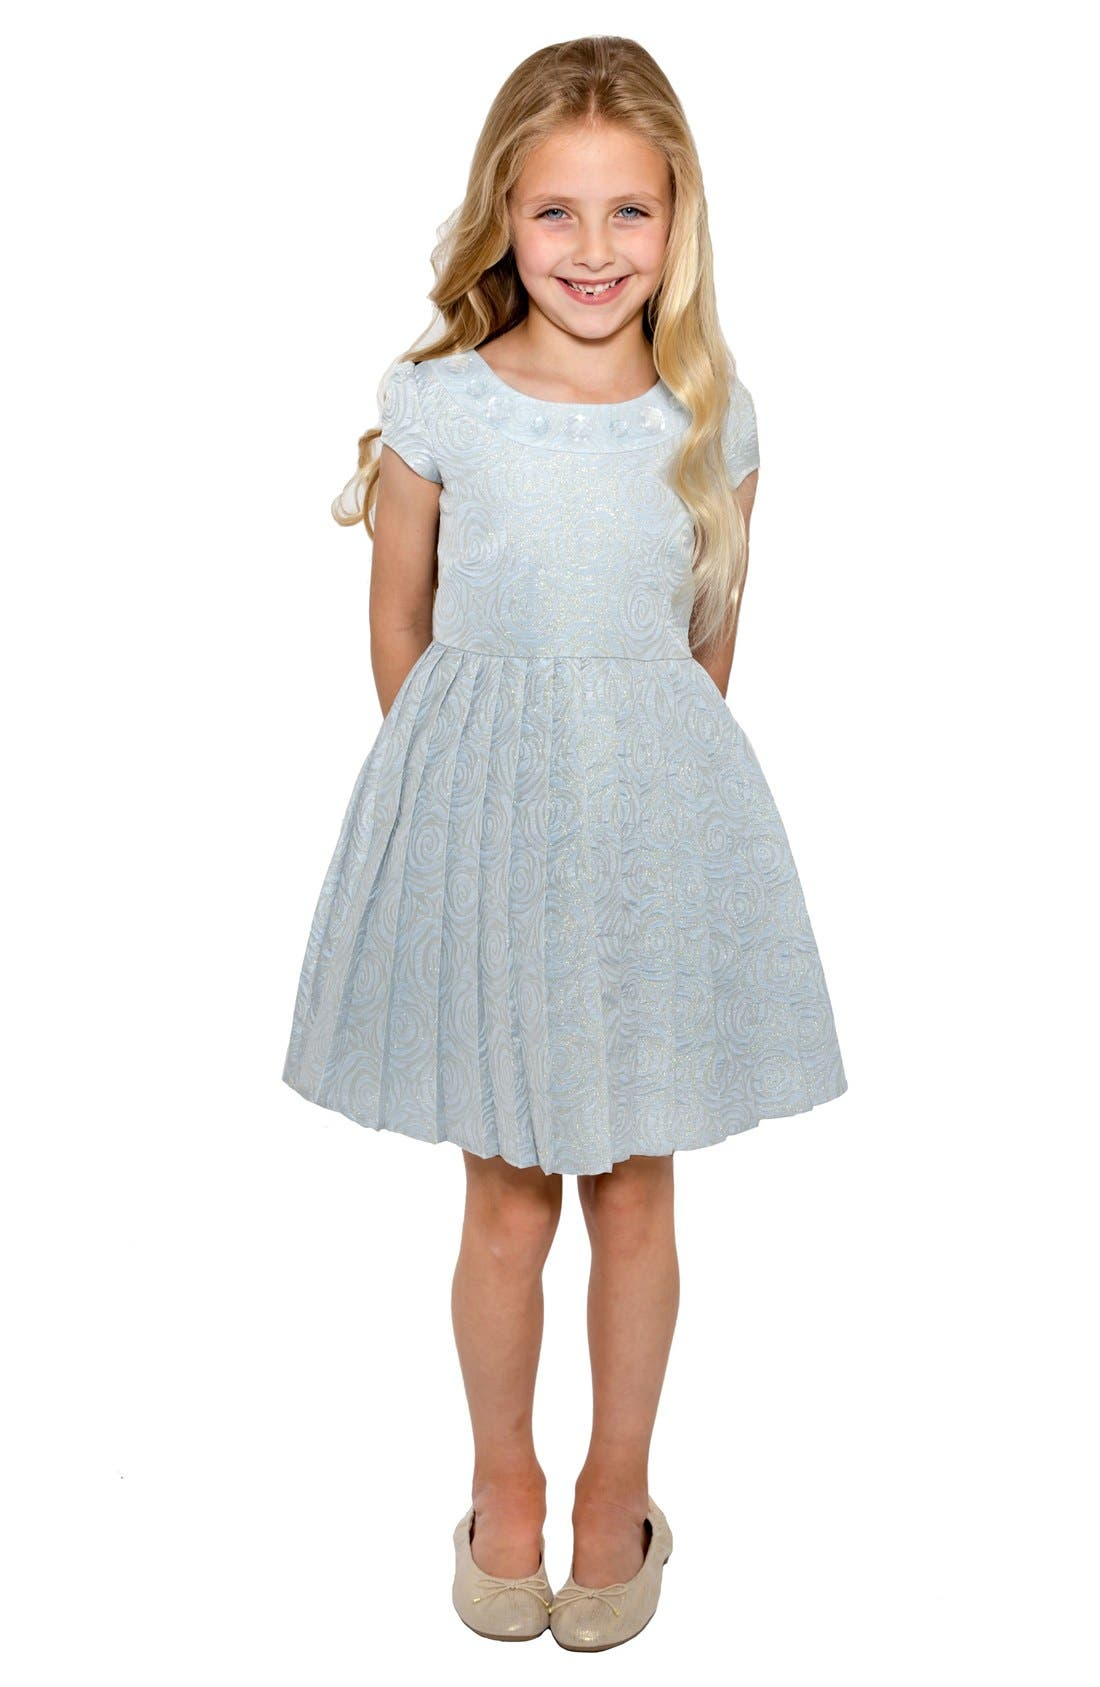 Little Angels Floral Brocade Dress (Toddler Girls & Little Girls)